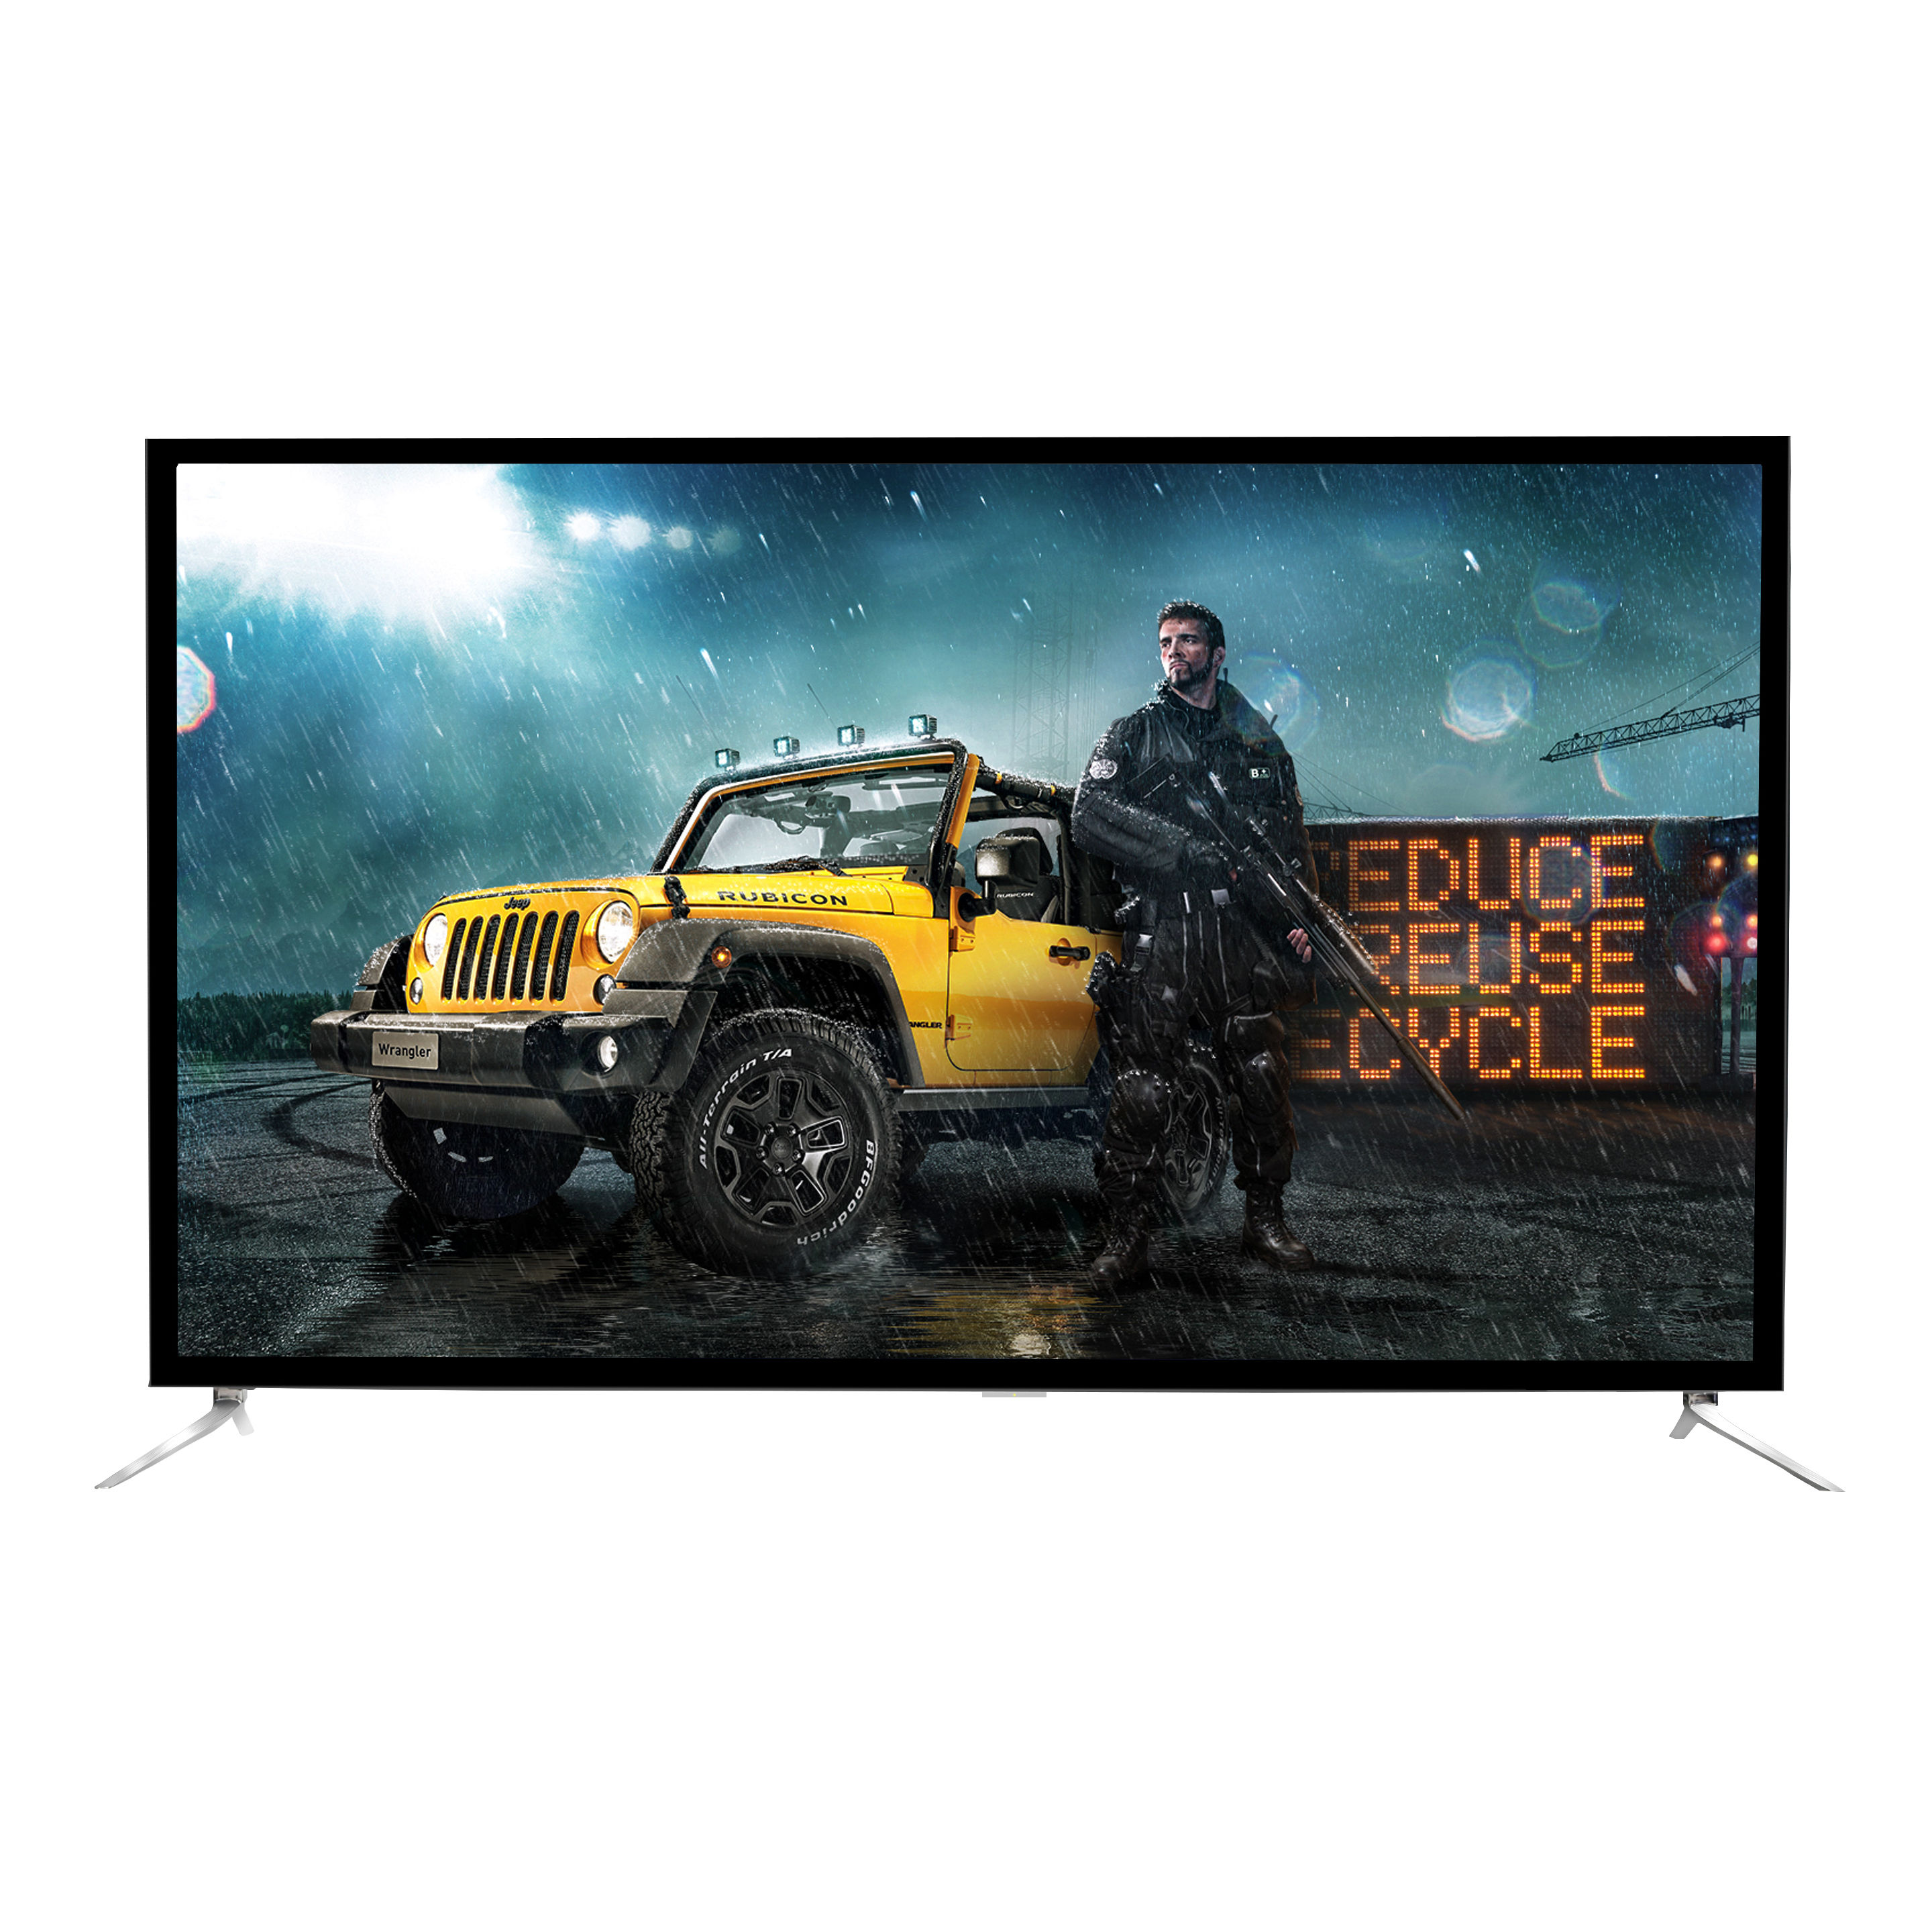 Chegada nova Smart <span class=keywords><strong>TV</strong></span> CHIGO 4S 43 50 55 65 polegadas Tela Full HD Android <span class=keywords><strong>TV</strong></span>